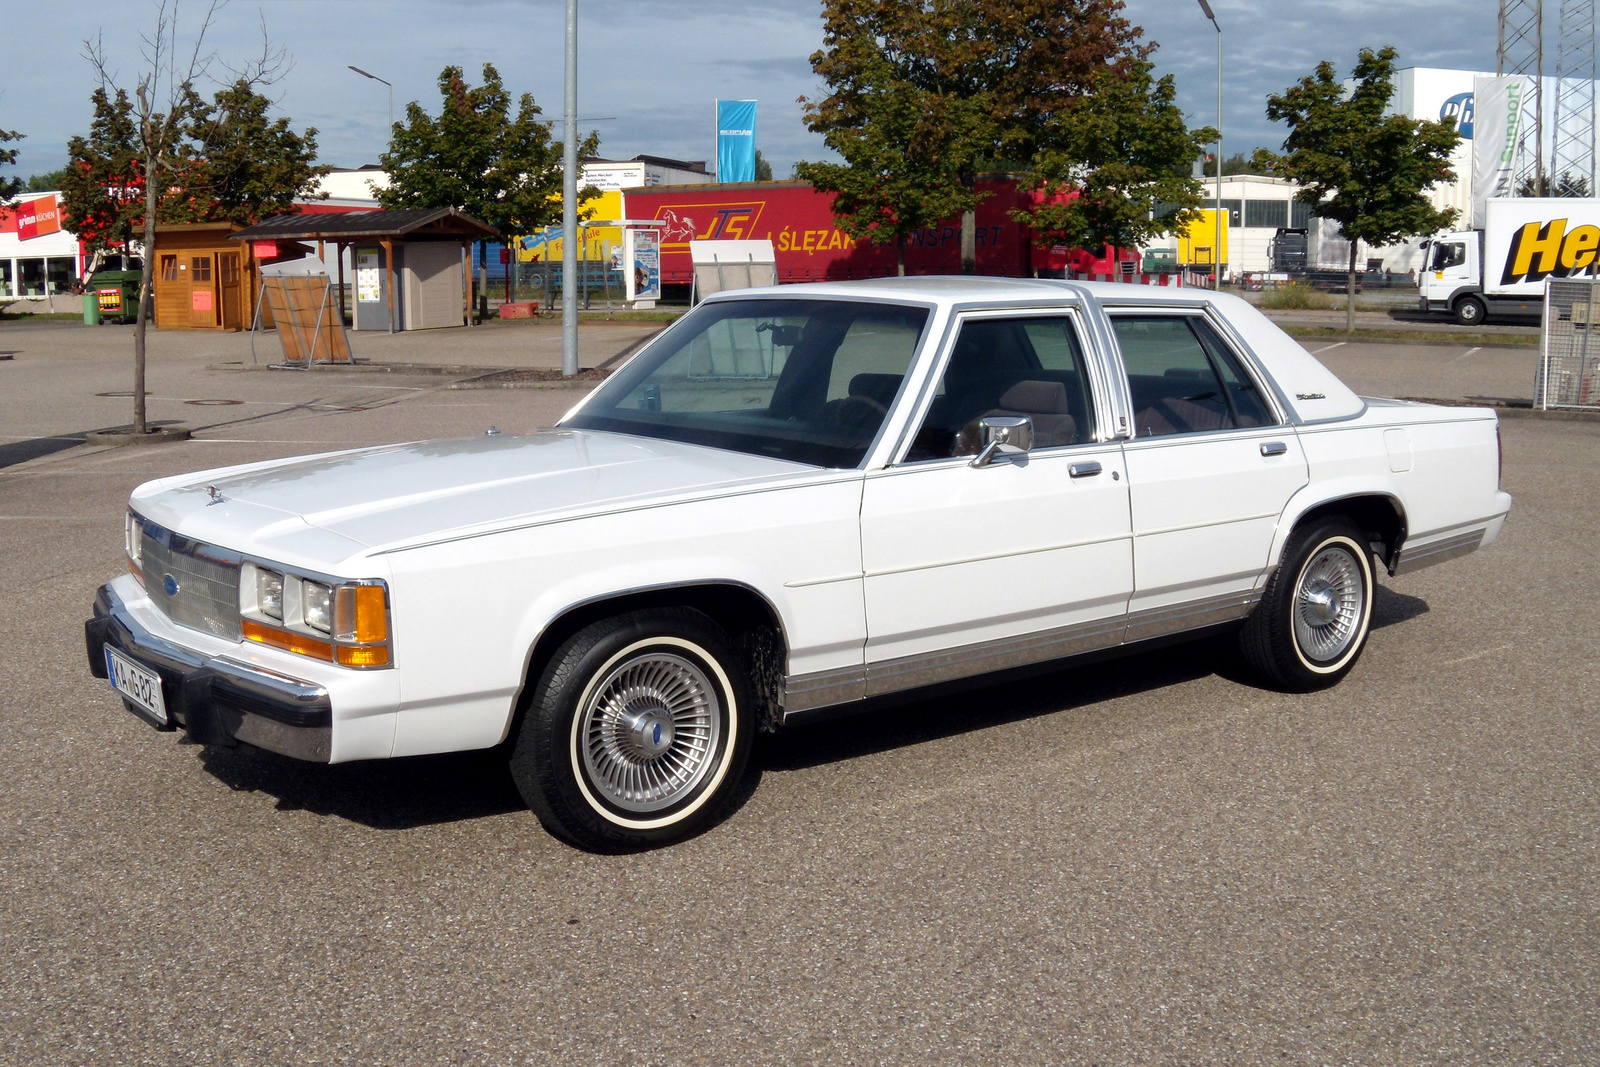 1990 ford ltd crown victoria - pictures